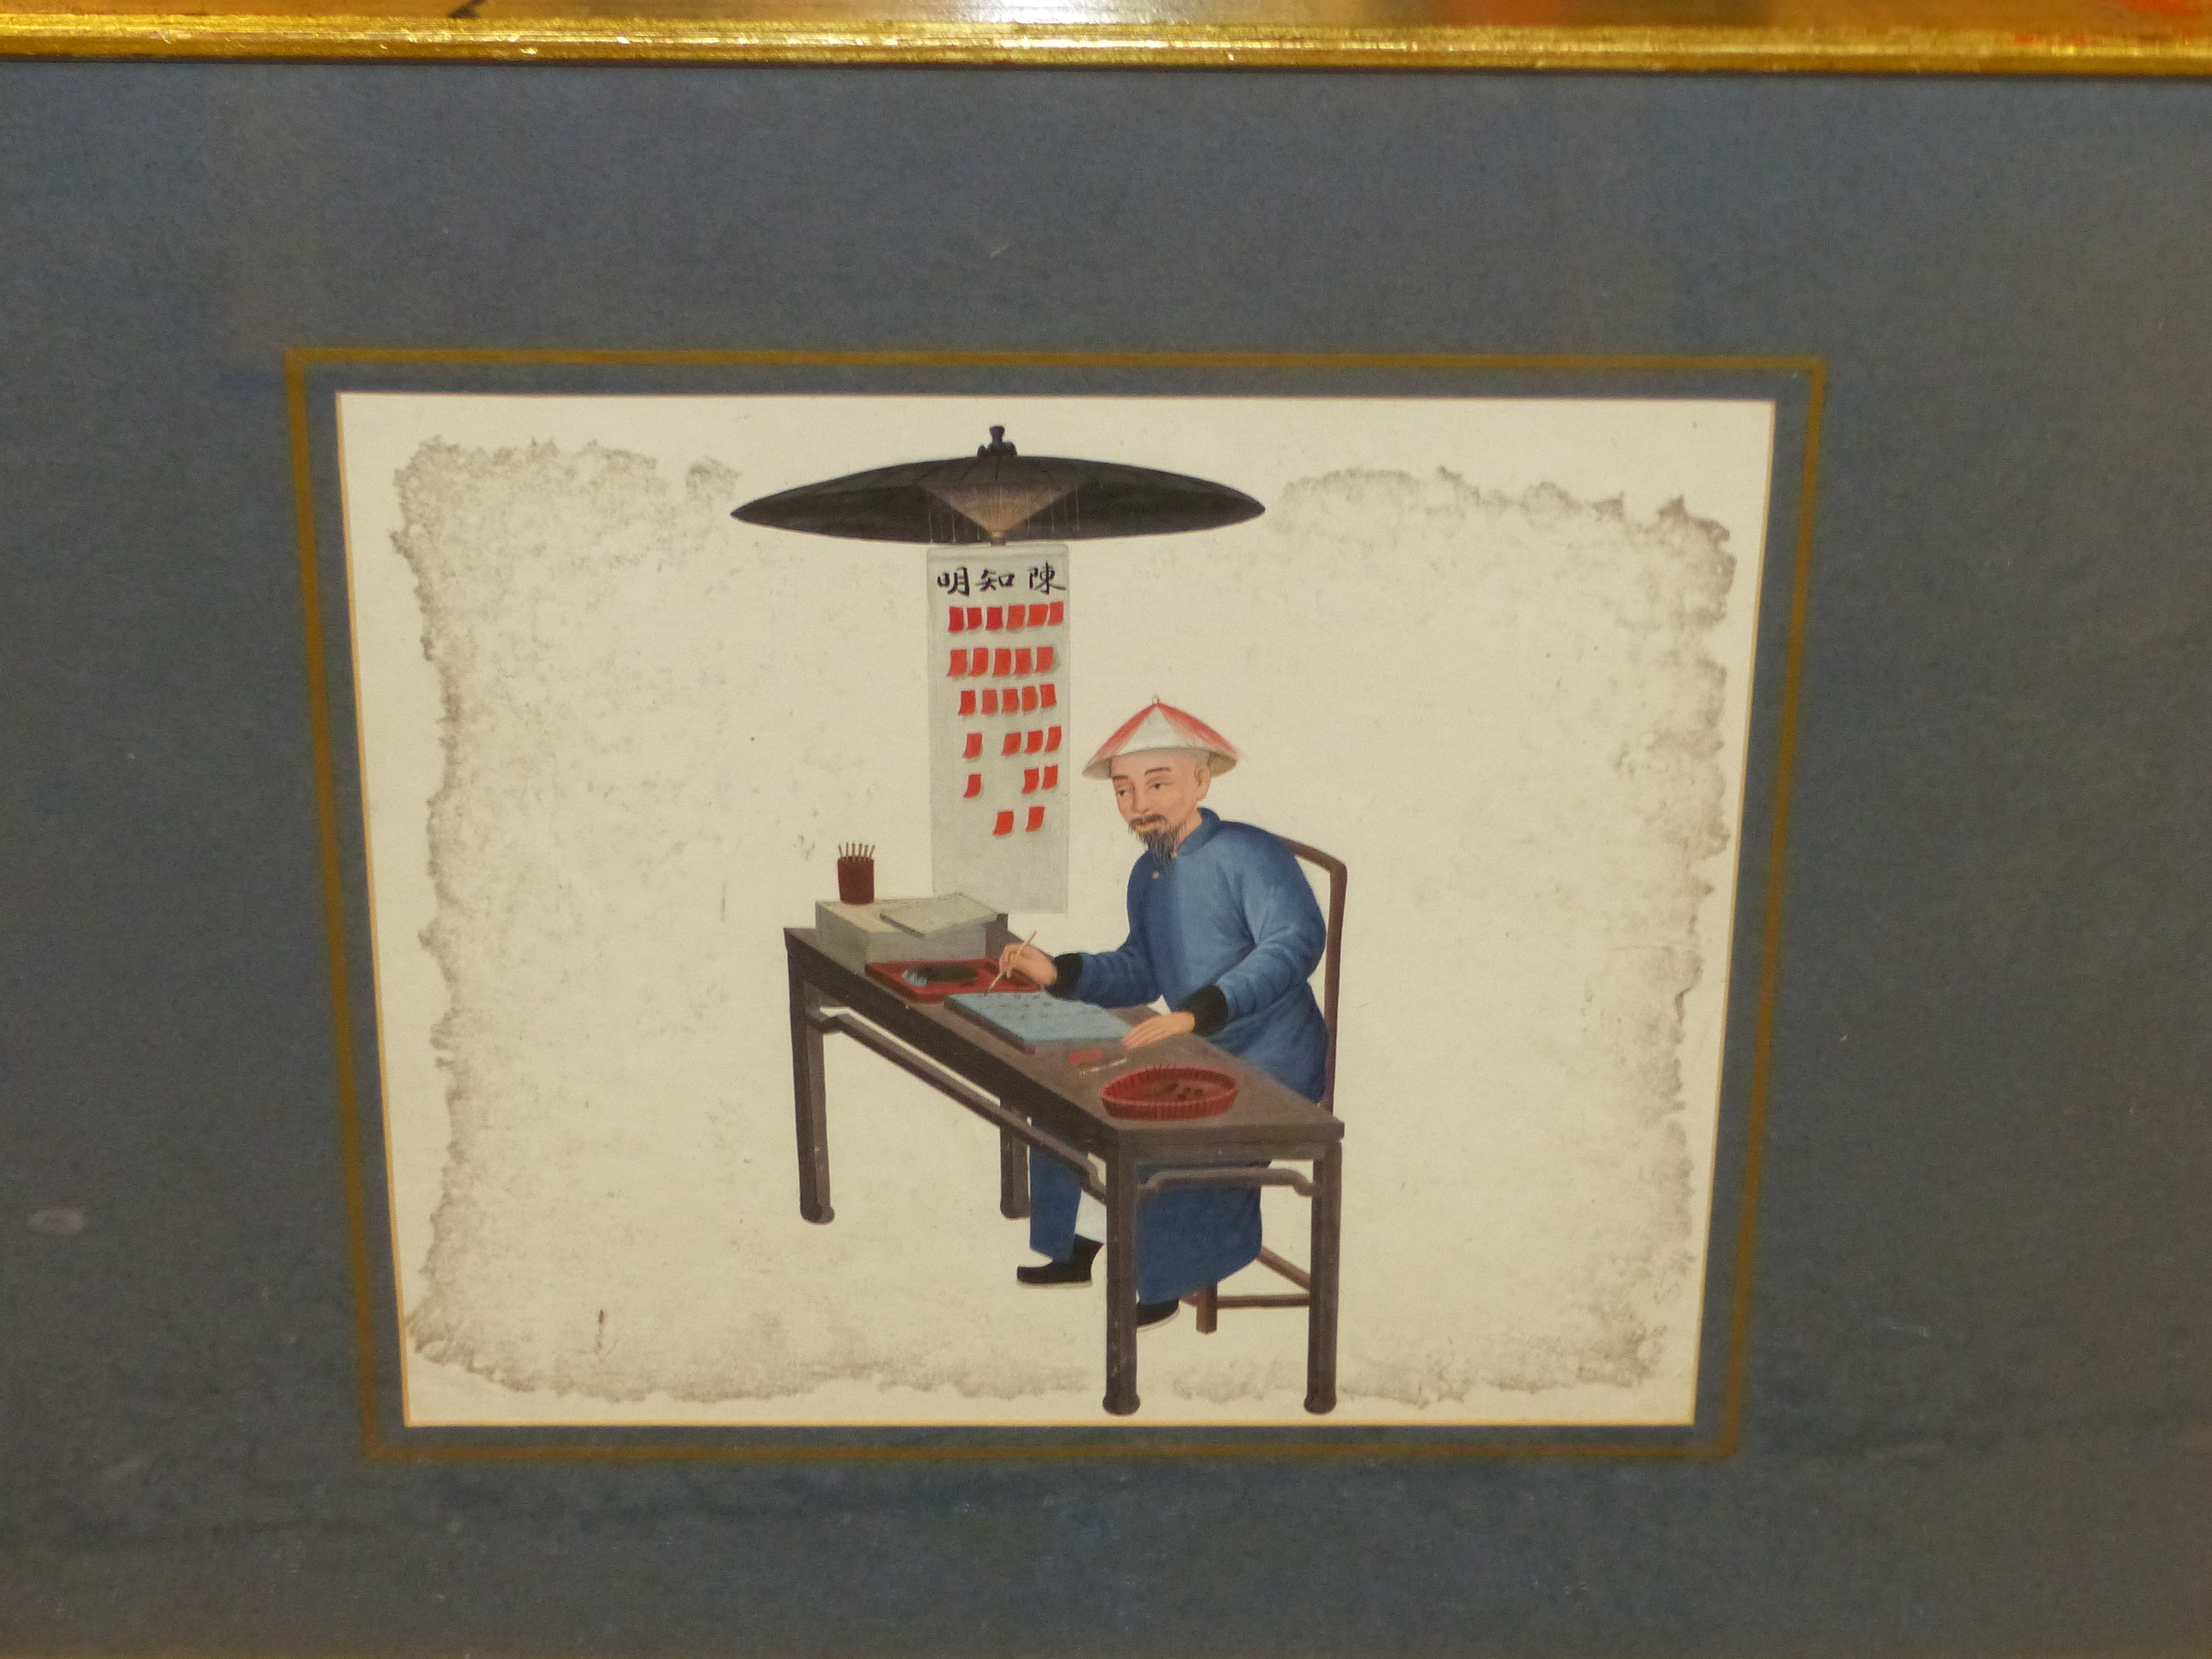 TWO GILT FRAMED CHINESE WATERCOLOURS, ONE OF A MAN SEATED AT A TABLE WRITING, THE OTHER OF A MAN - Image 4 of 5